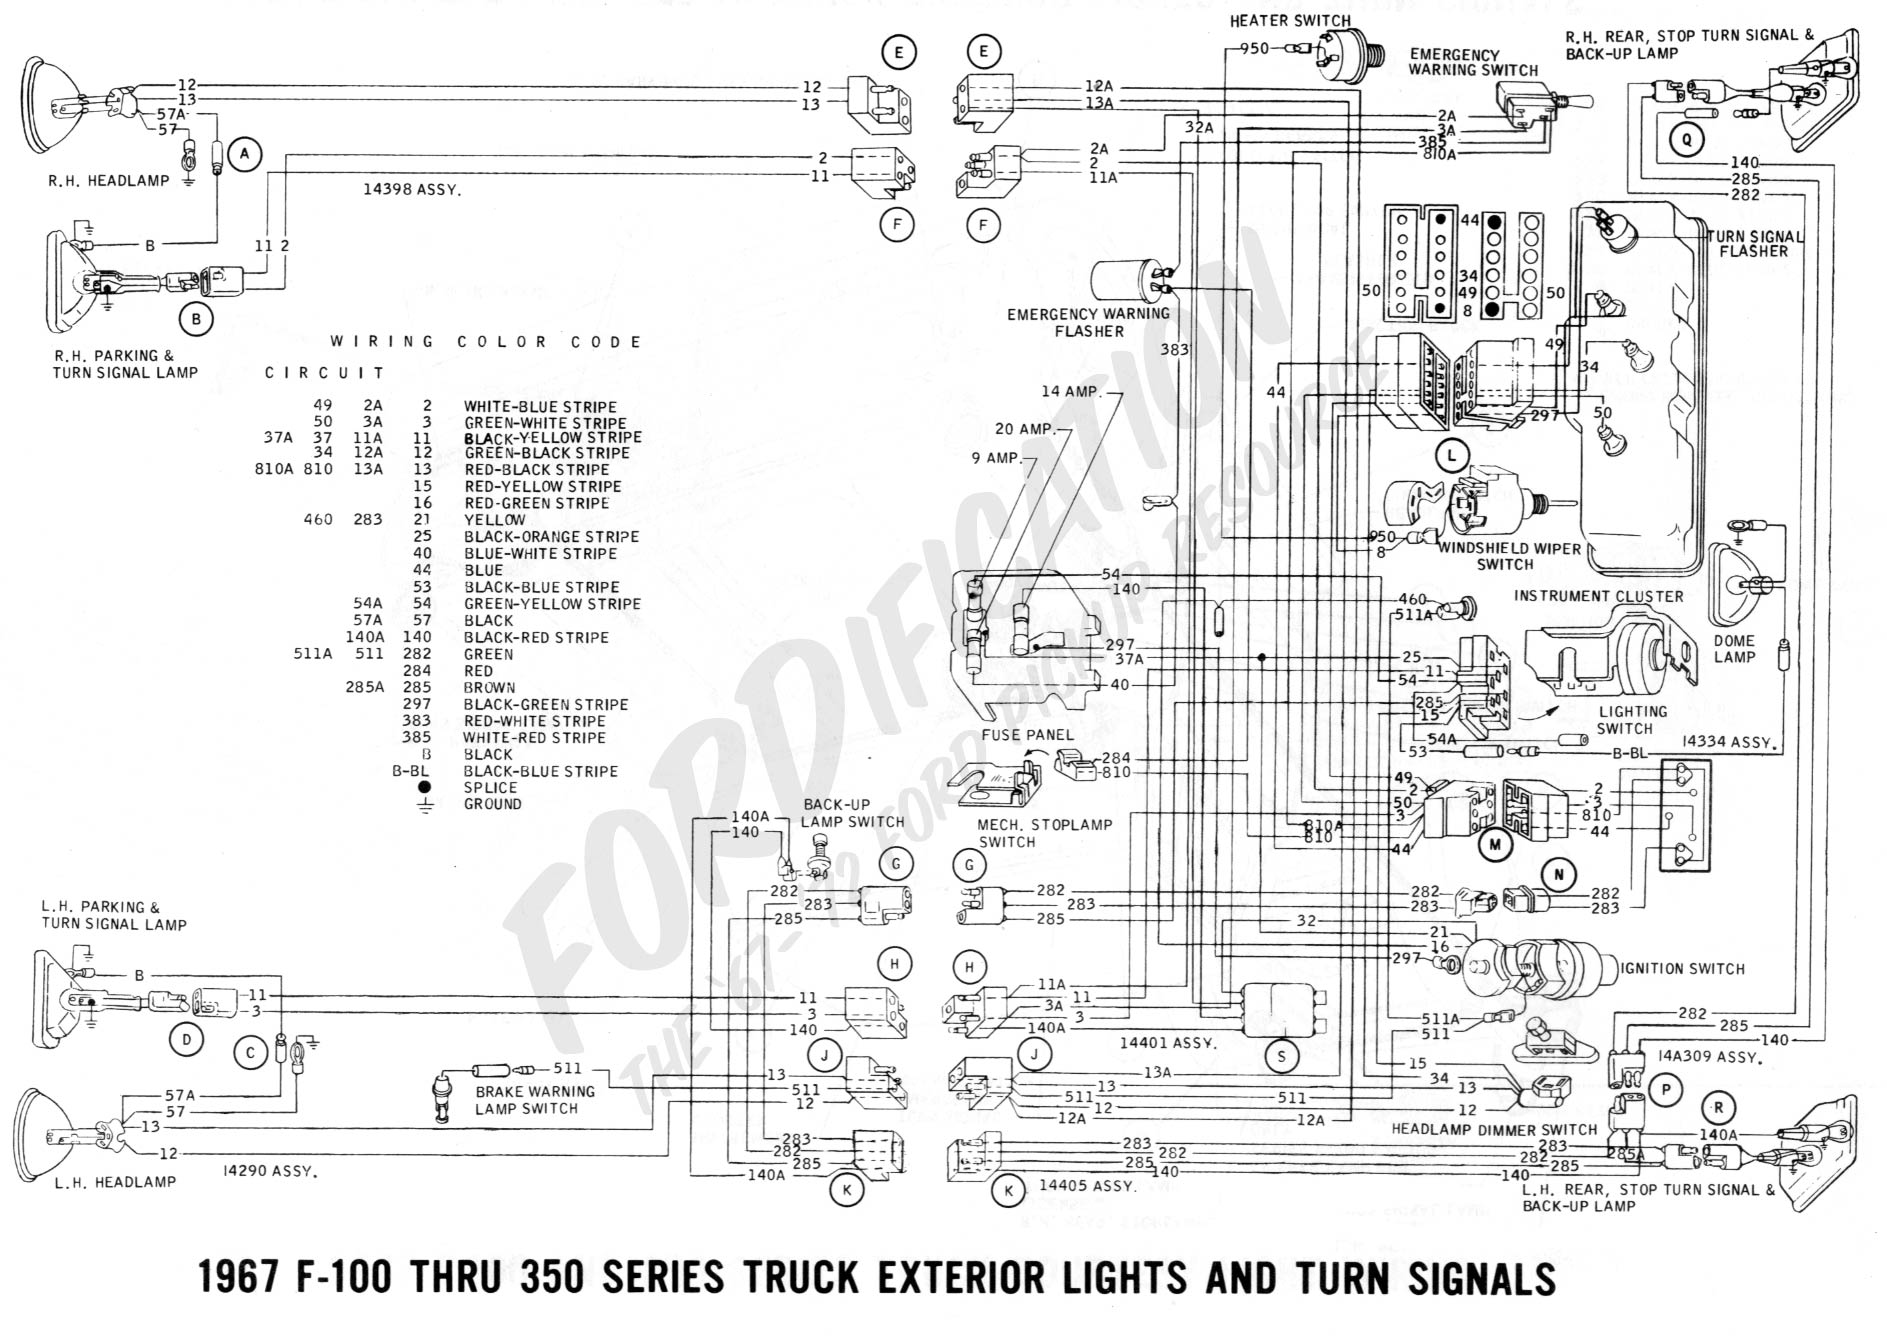 Radio Wiring Diagram 1968 Falcon Online Schematics Kenwood Car Amfm Ford F100 Detailed Bug